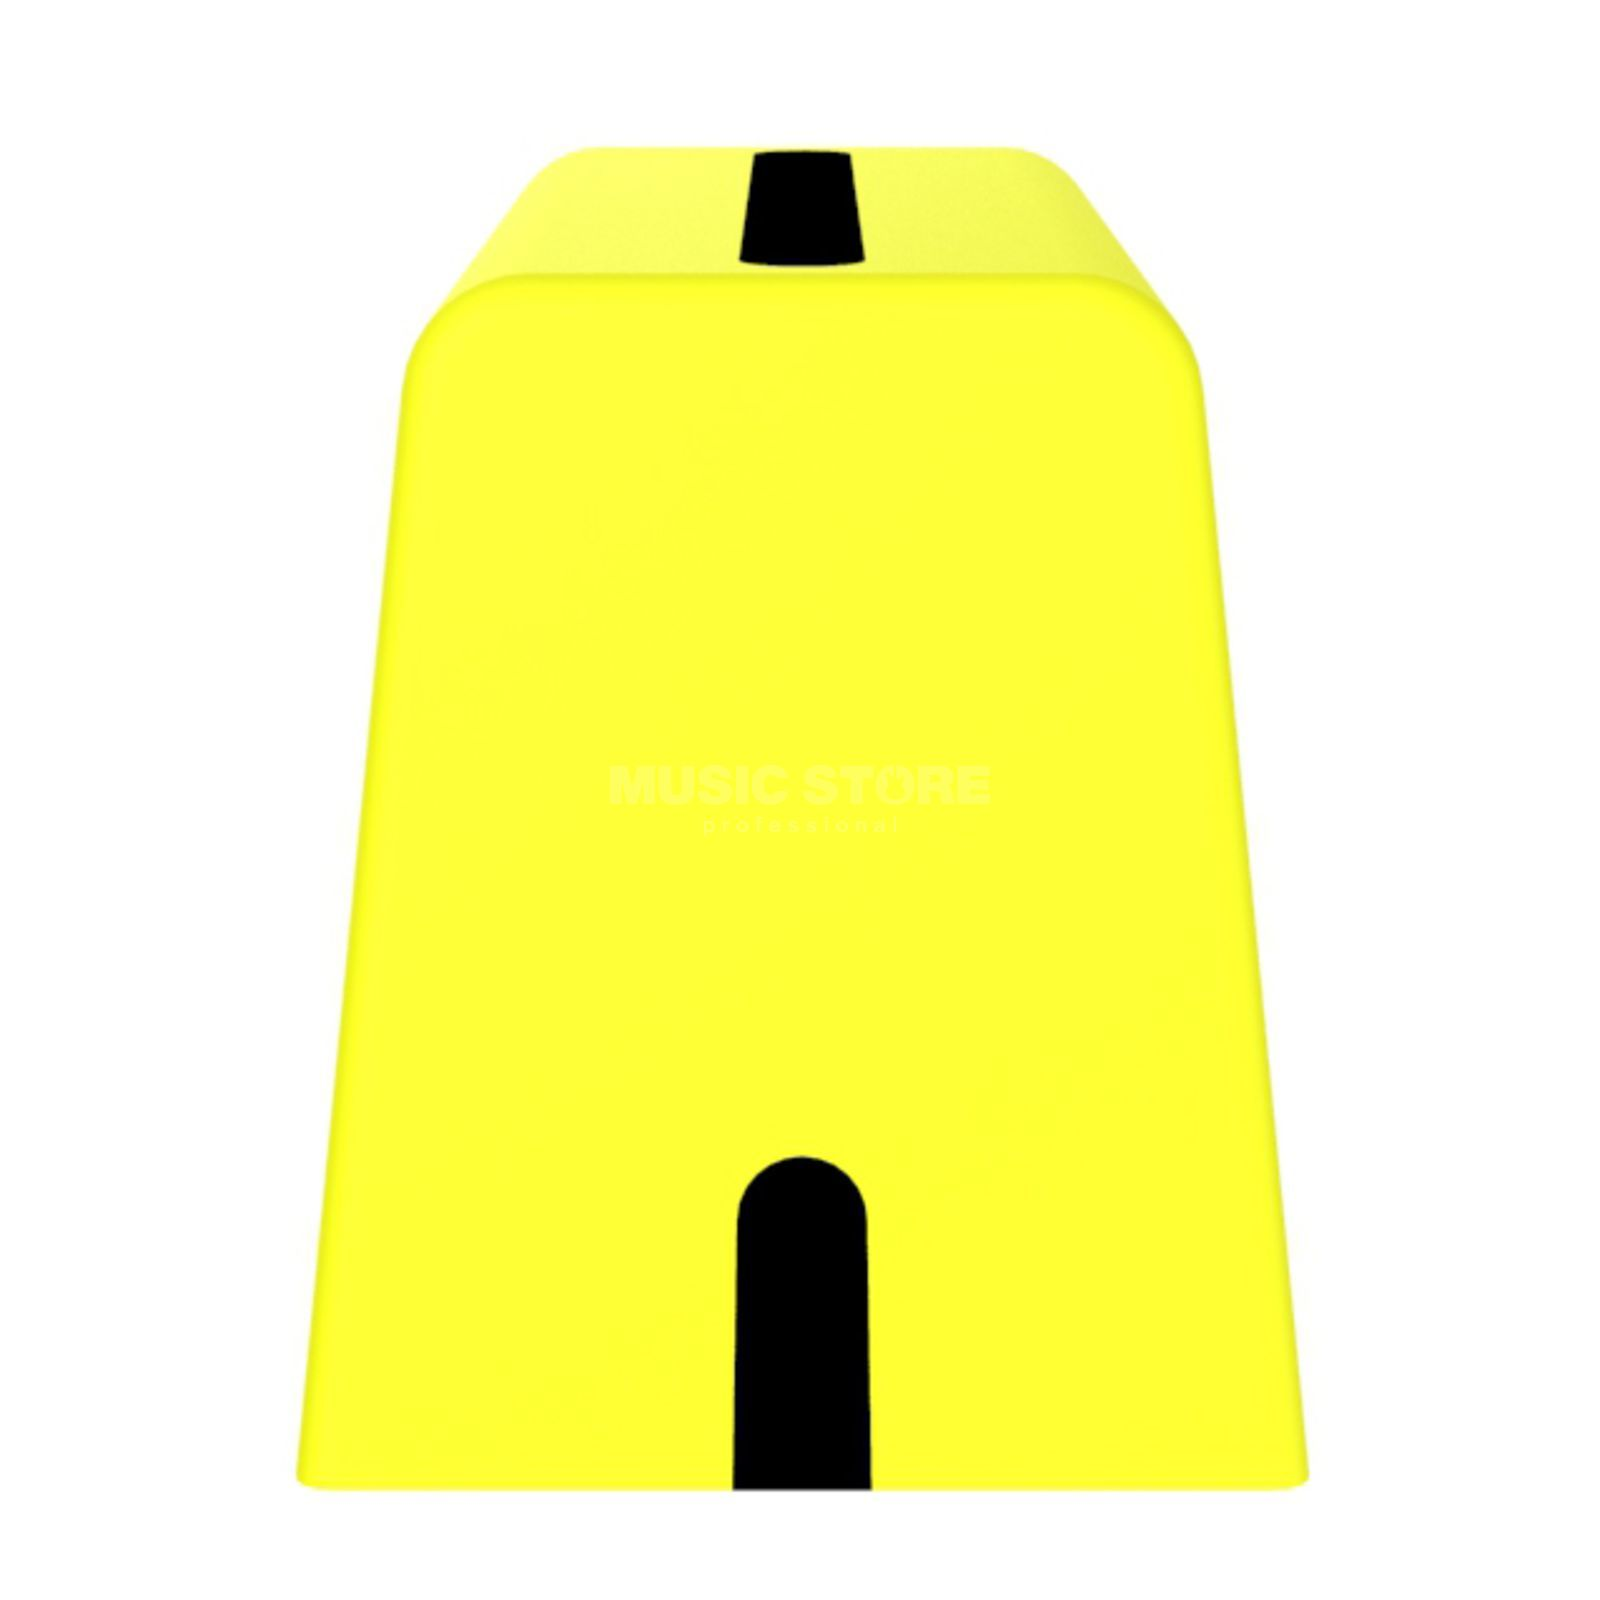 DJ TECHTOOLS Chroma Caps Fader yellow  Product Image